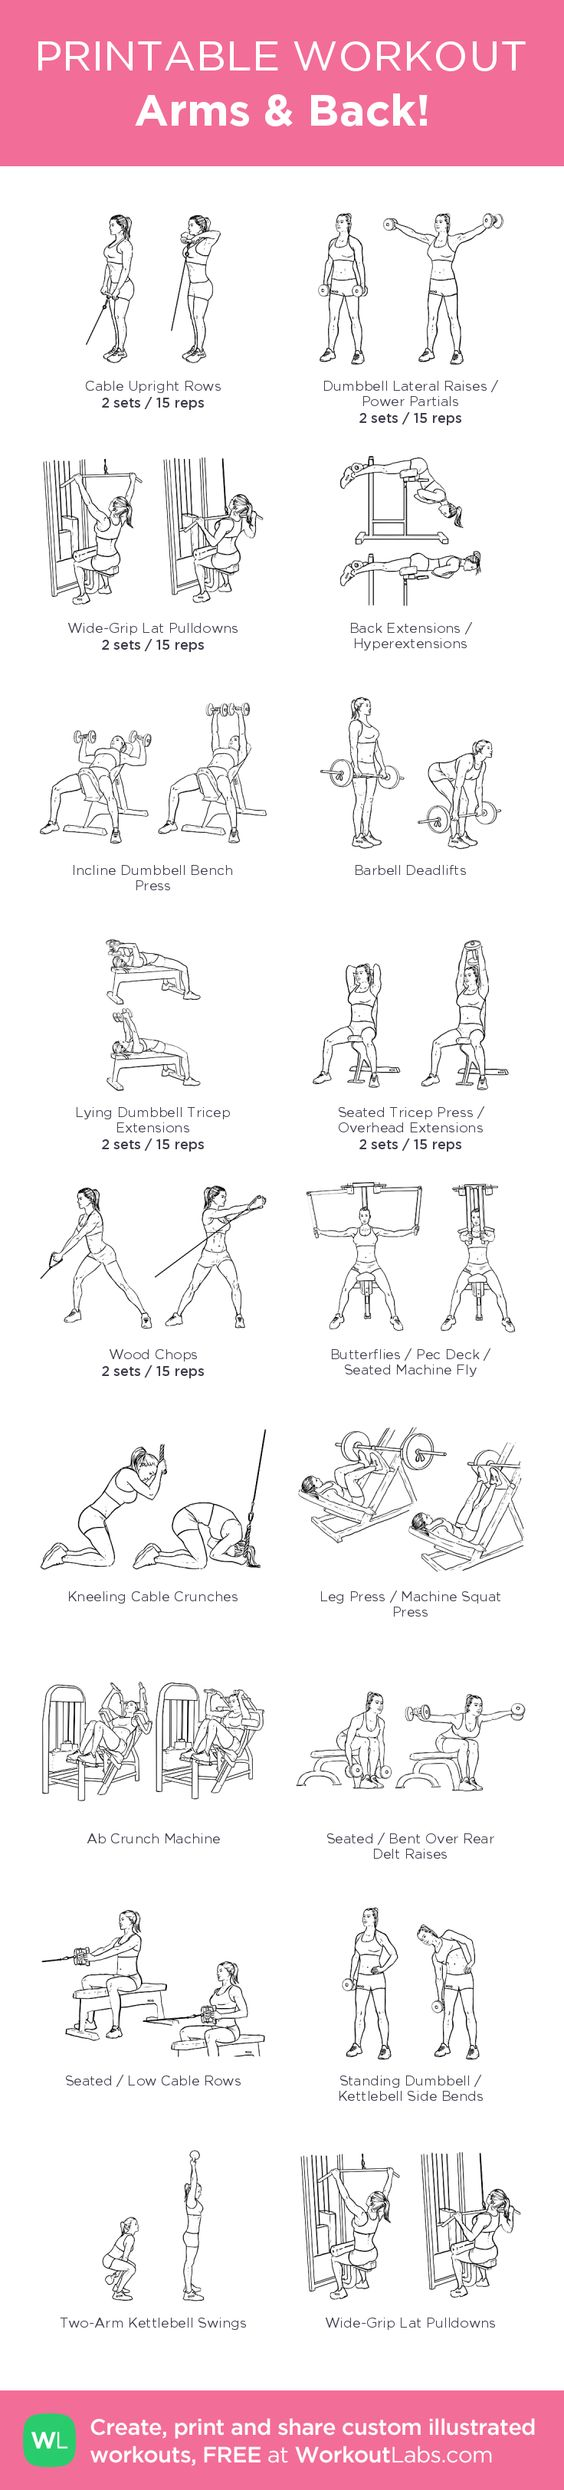 Arms & Back! –illustrated exercise plan created at WorkoutLabs.com • Click for a printable PDF and to build your own #customworkout